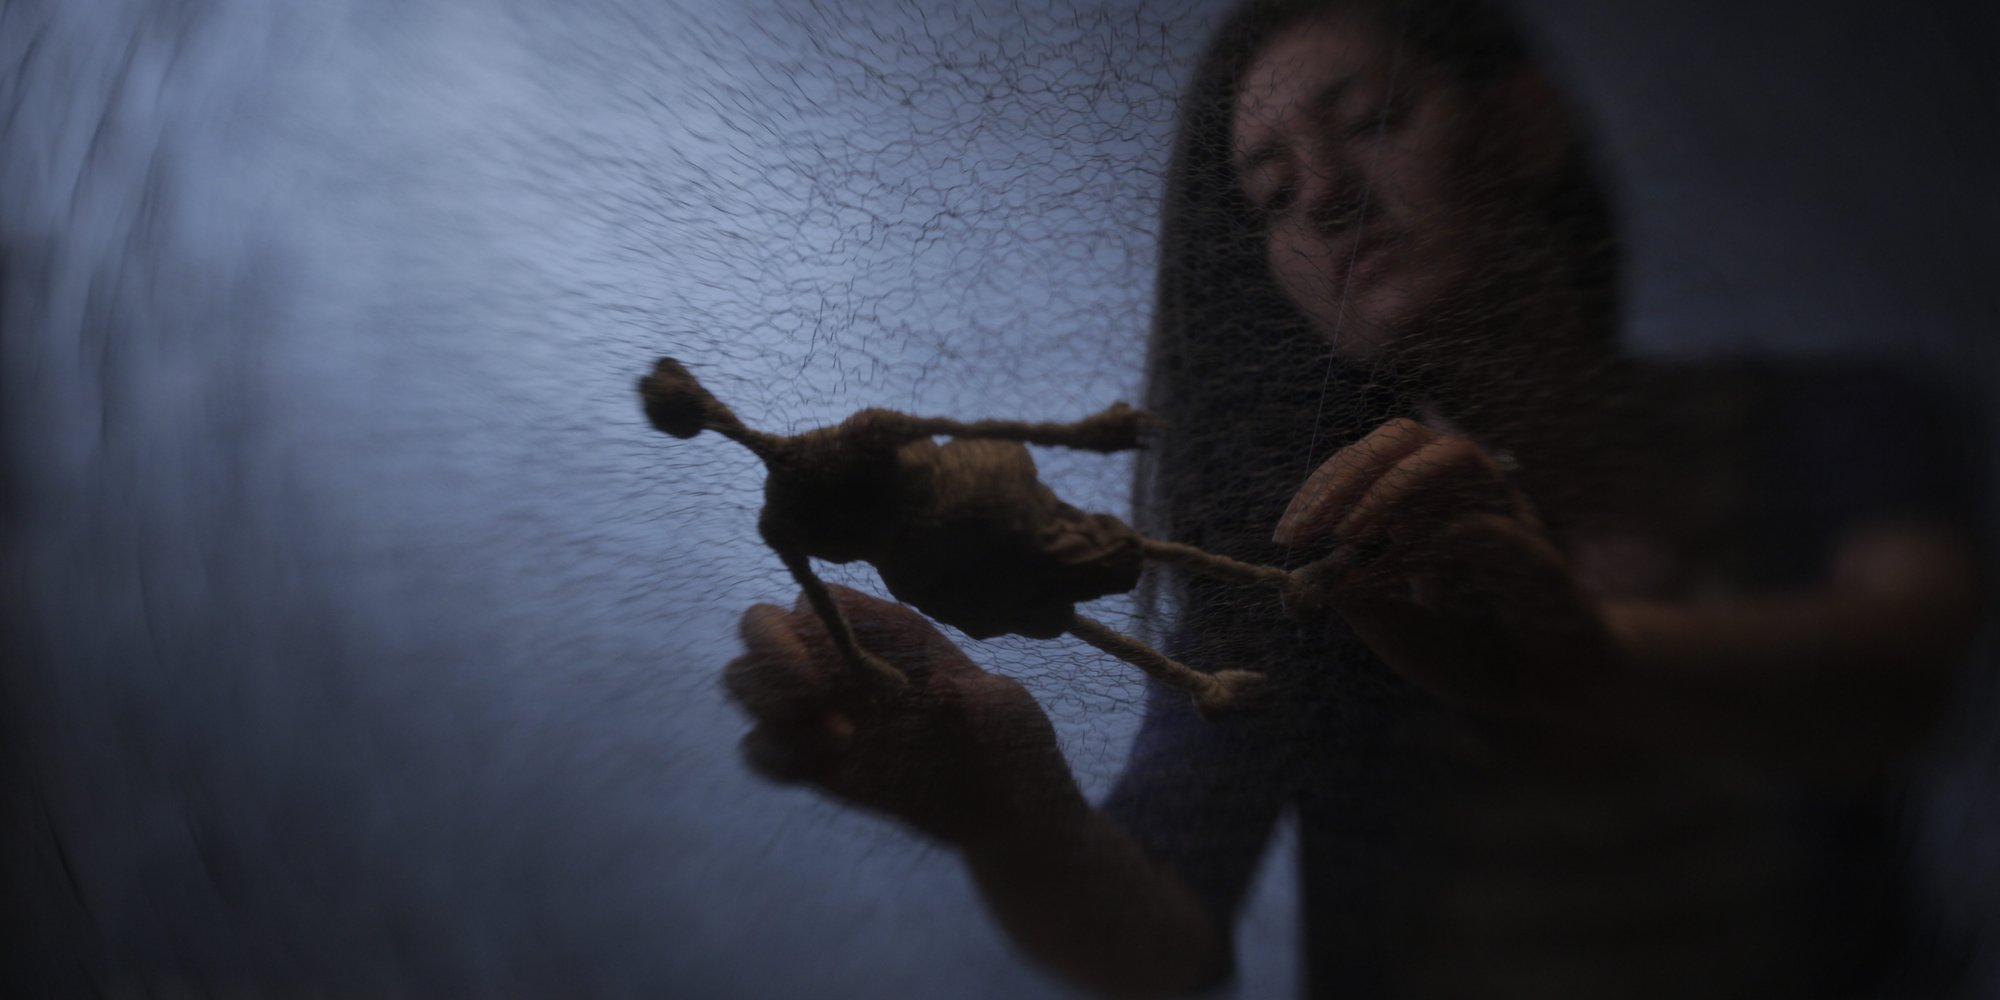 Director/Animator Alicia Eisen puts the finishing touches on a scene under water.